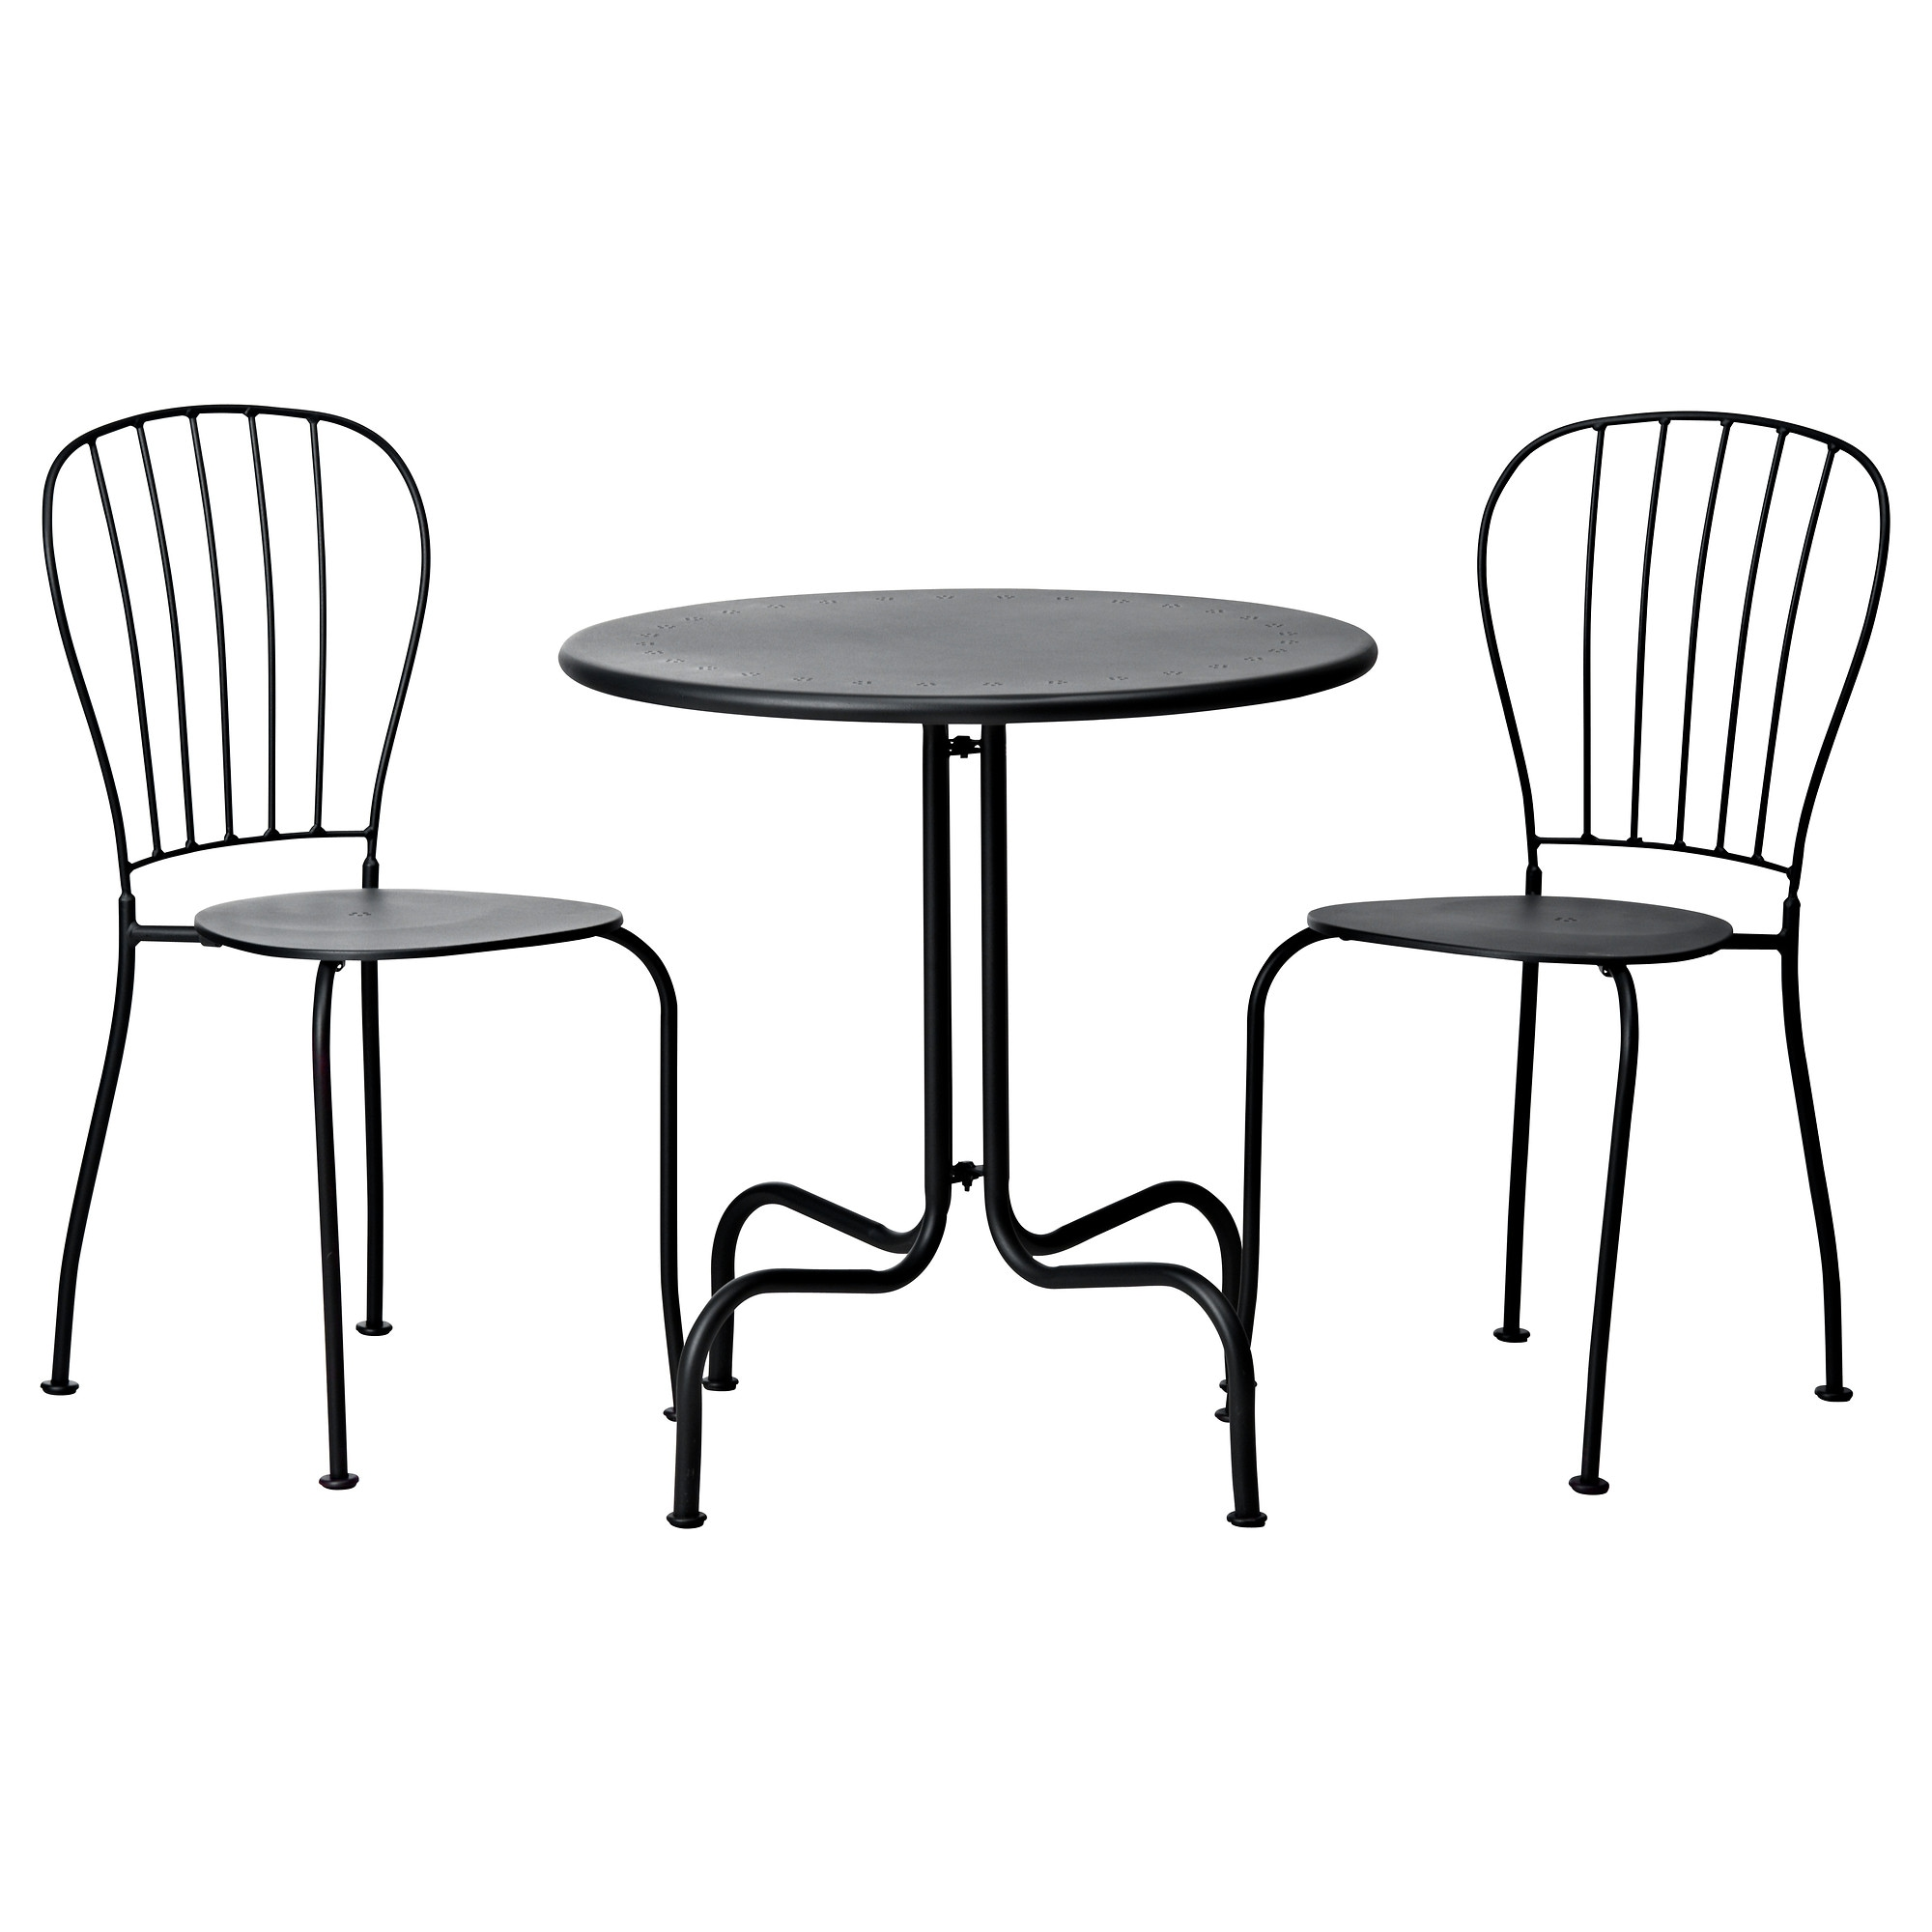 Outdoor table and chairs - Outdoor Table And Chairs